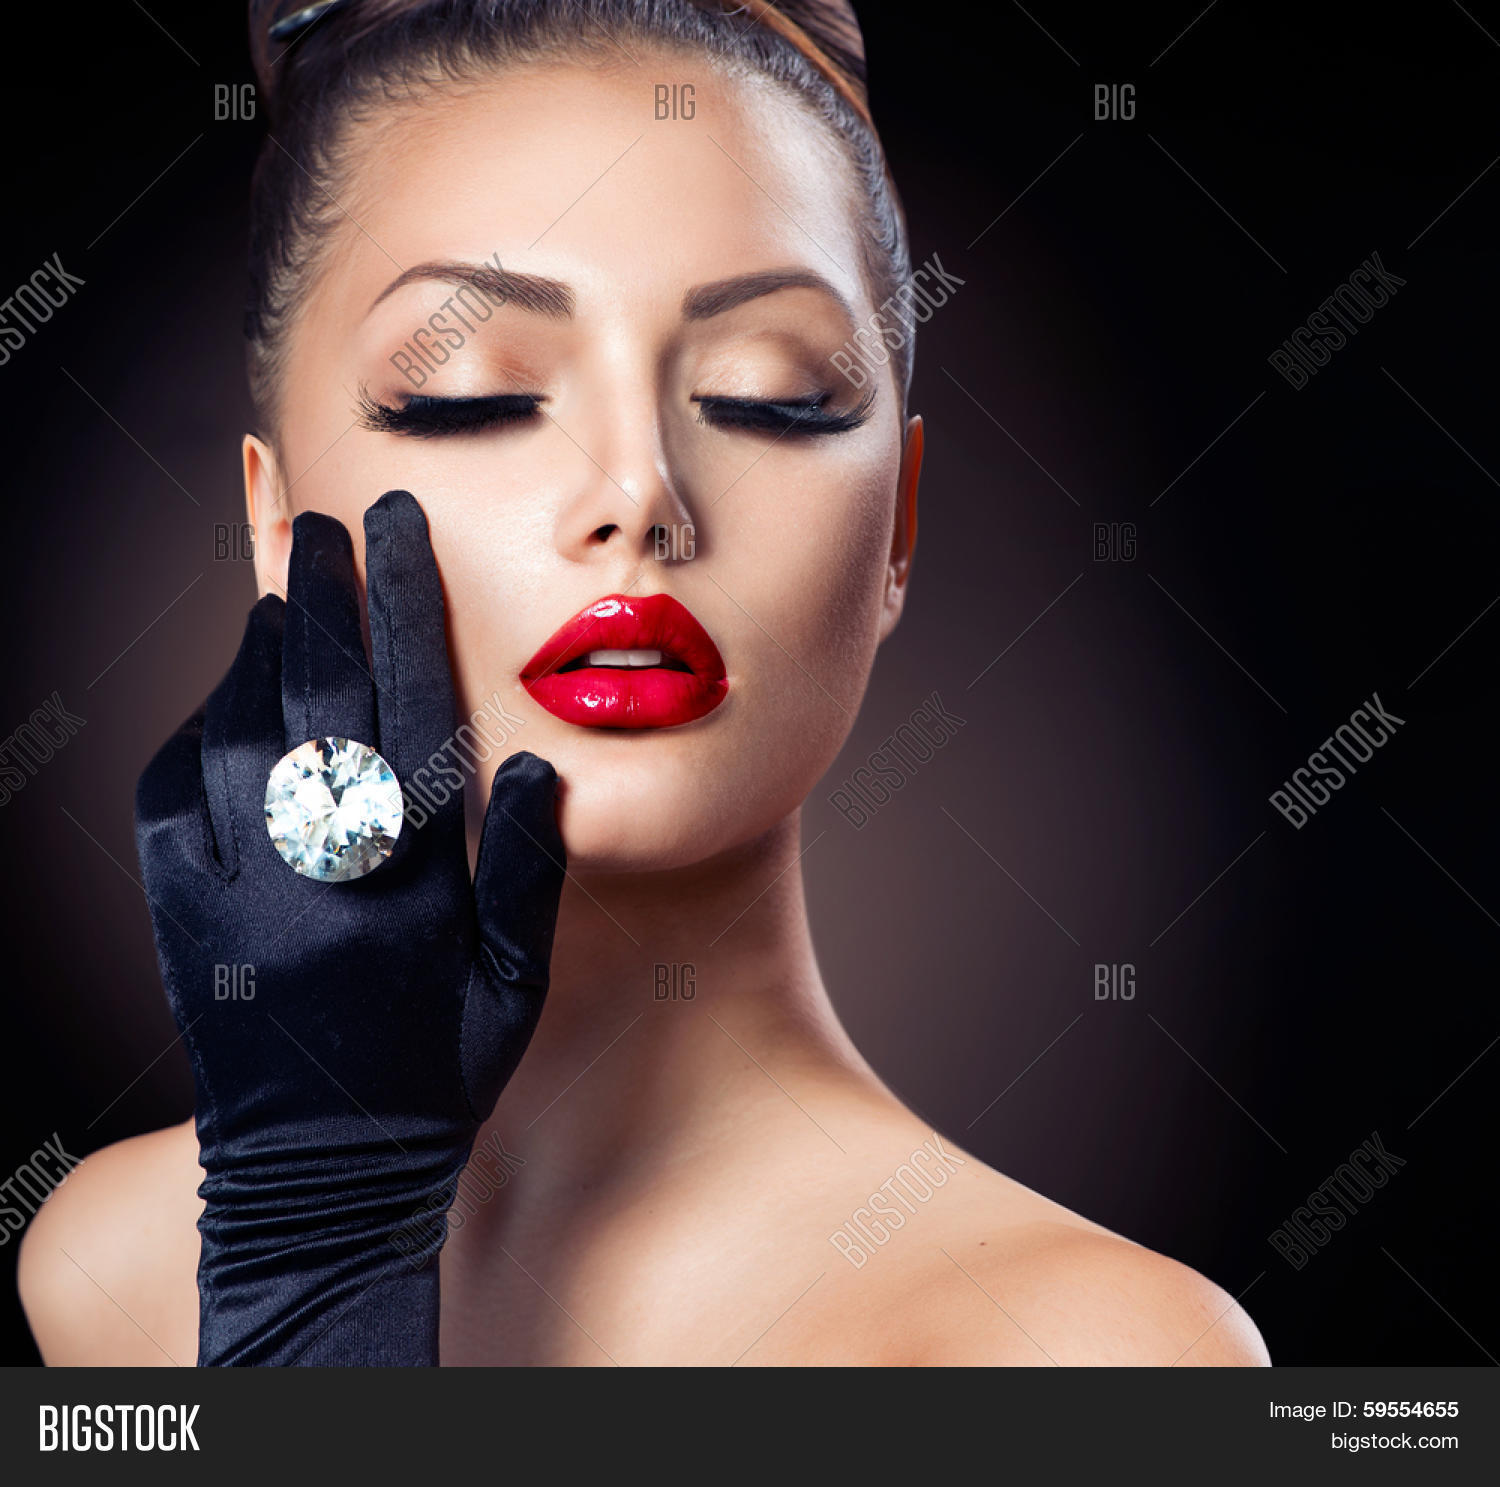 Beauty Fashion Glamour Girl Image Amp Photo Bigstock